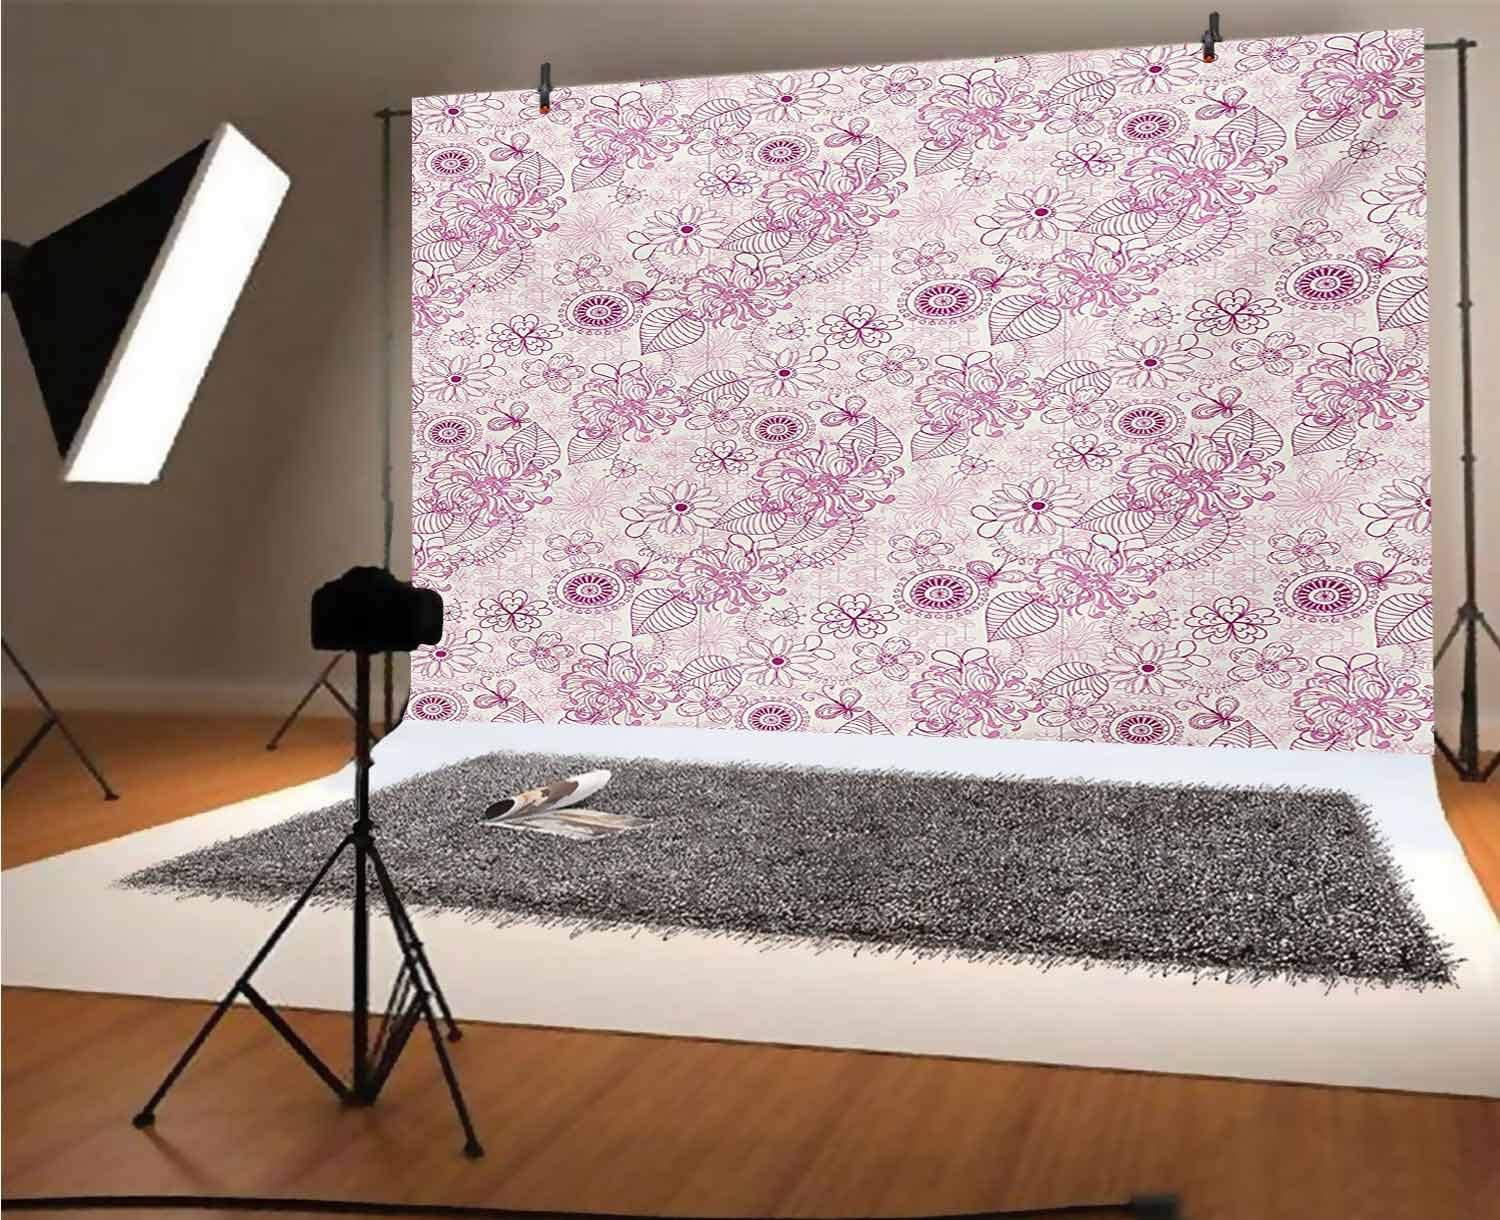 Tattoo 15x10 FT Vinyl Backdrop PhotographersJapanese Landscape of Rising Sun Waves with Red and Pink Foam Print Background for Party Home Decor Outdoorsy Theme Shoot Props